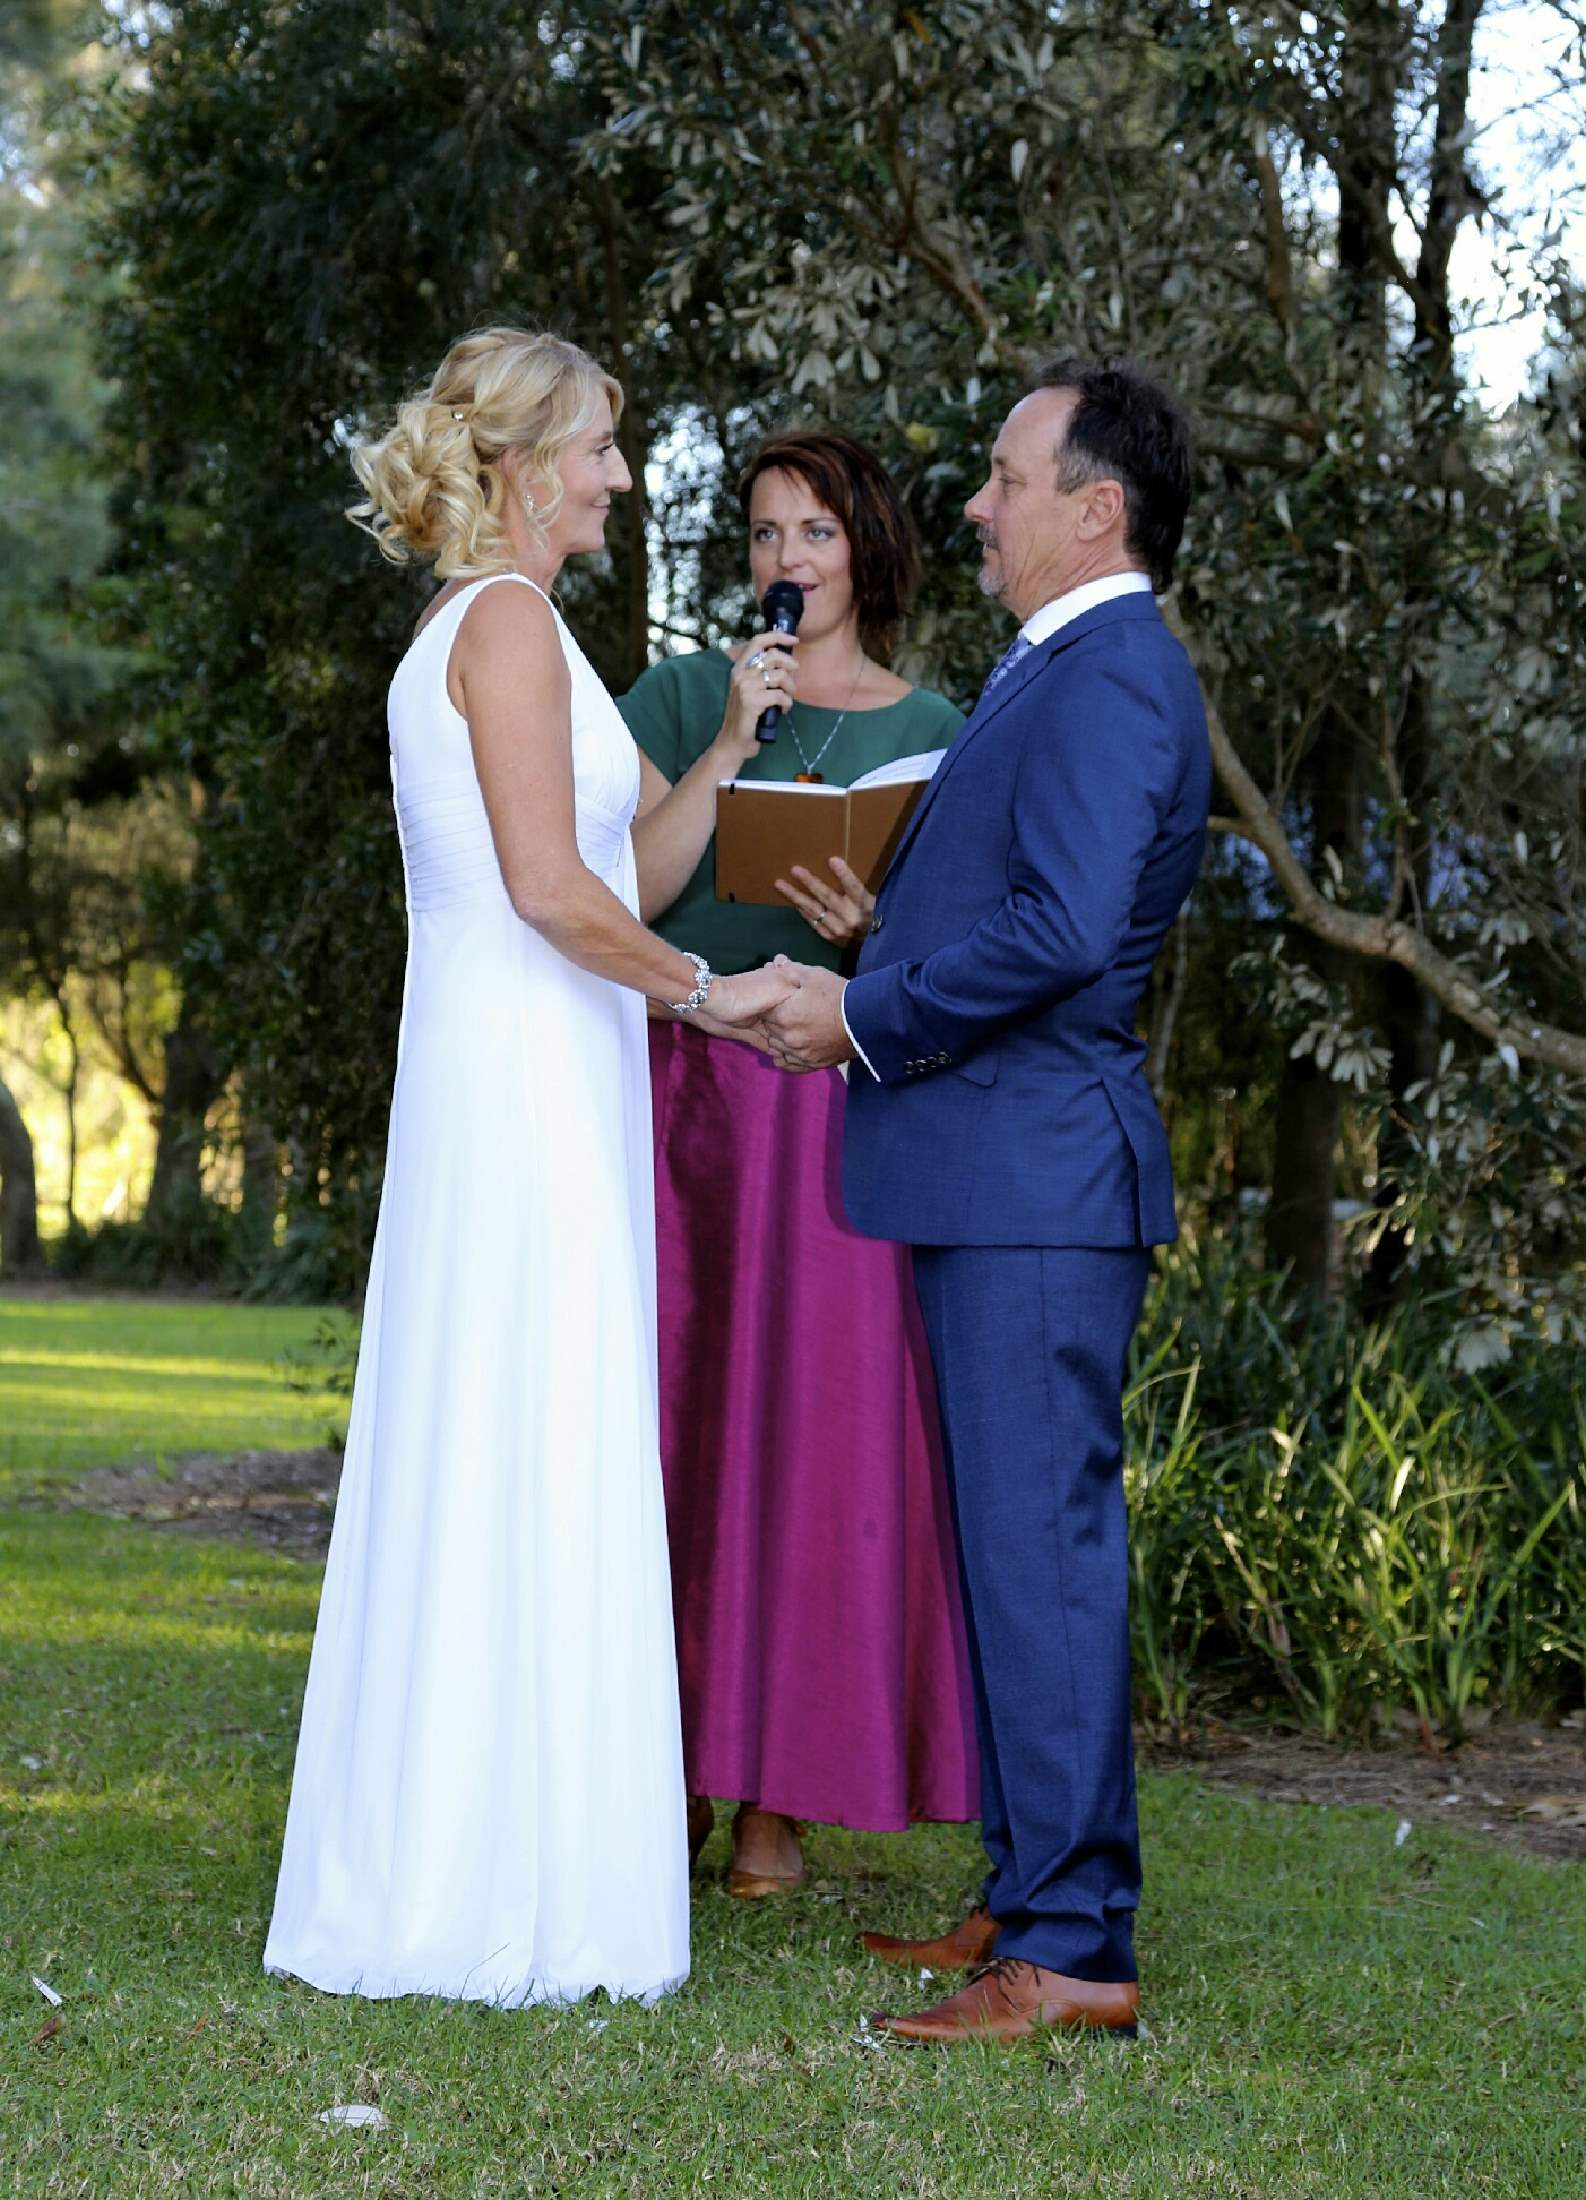 Shelley Josephine Ceremonies - Shelley Tunbridge Celebrant - Sydney Northern Beaches - Weddings